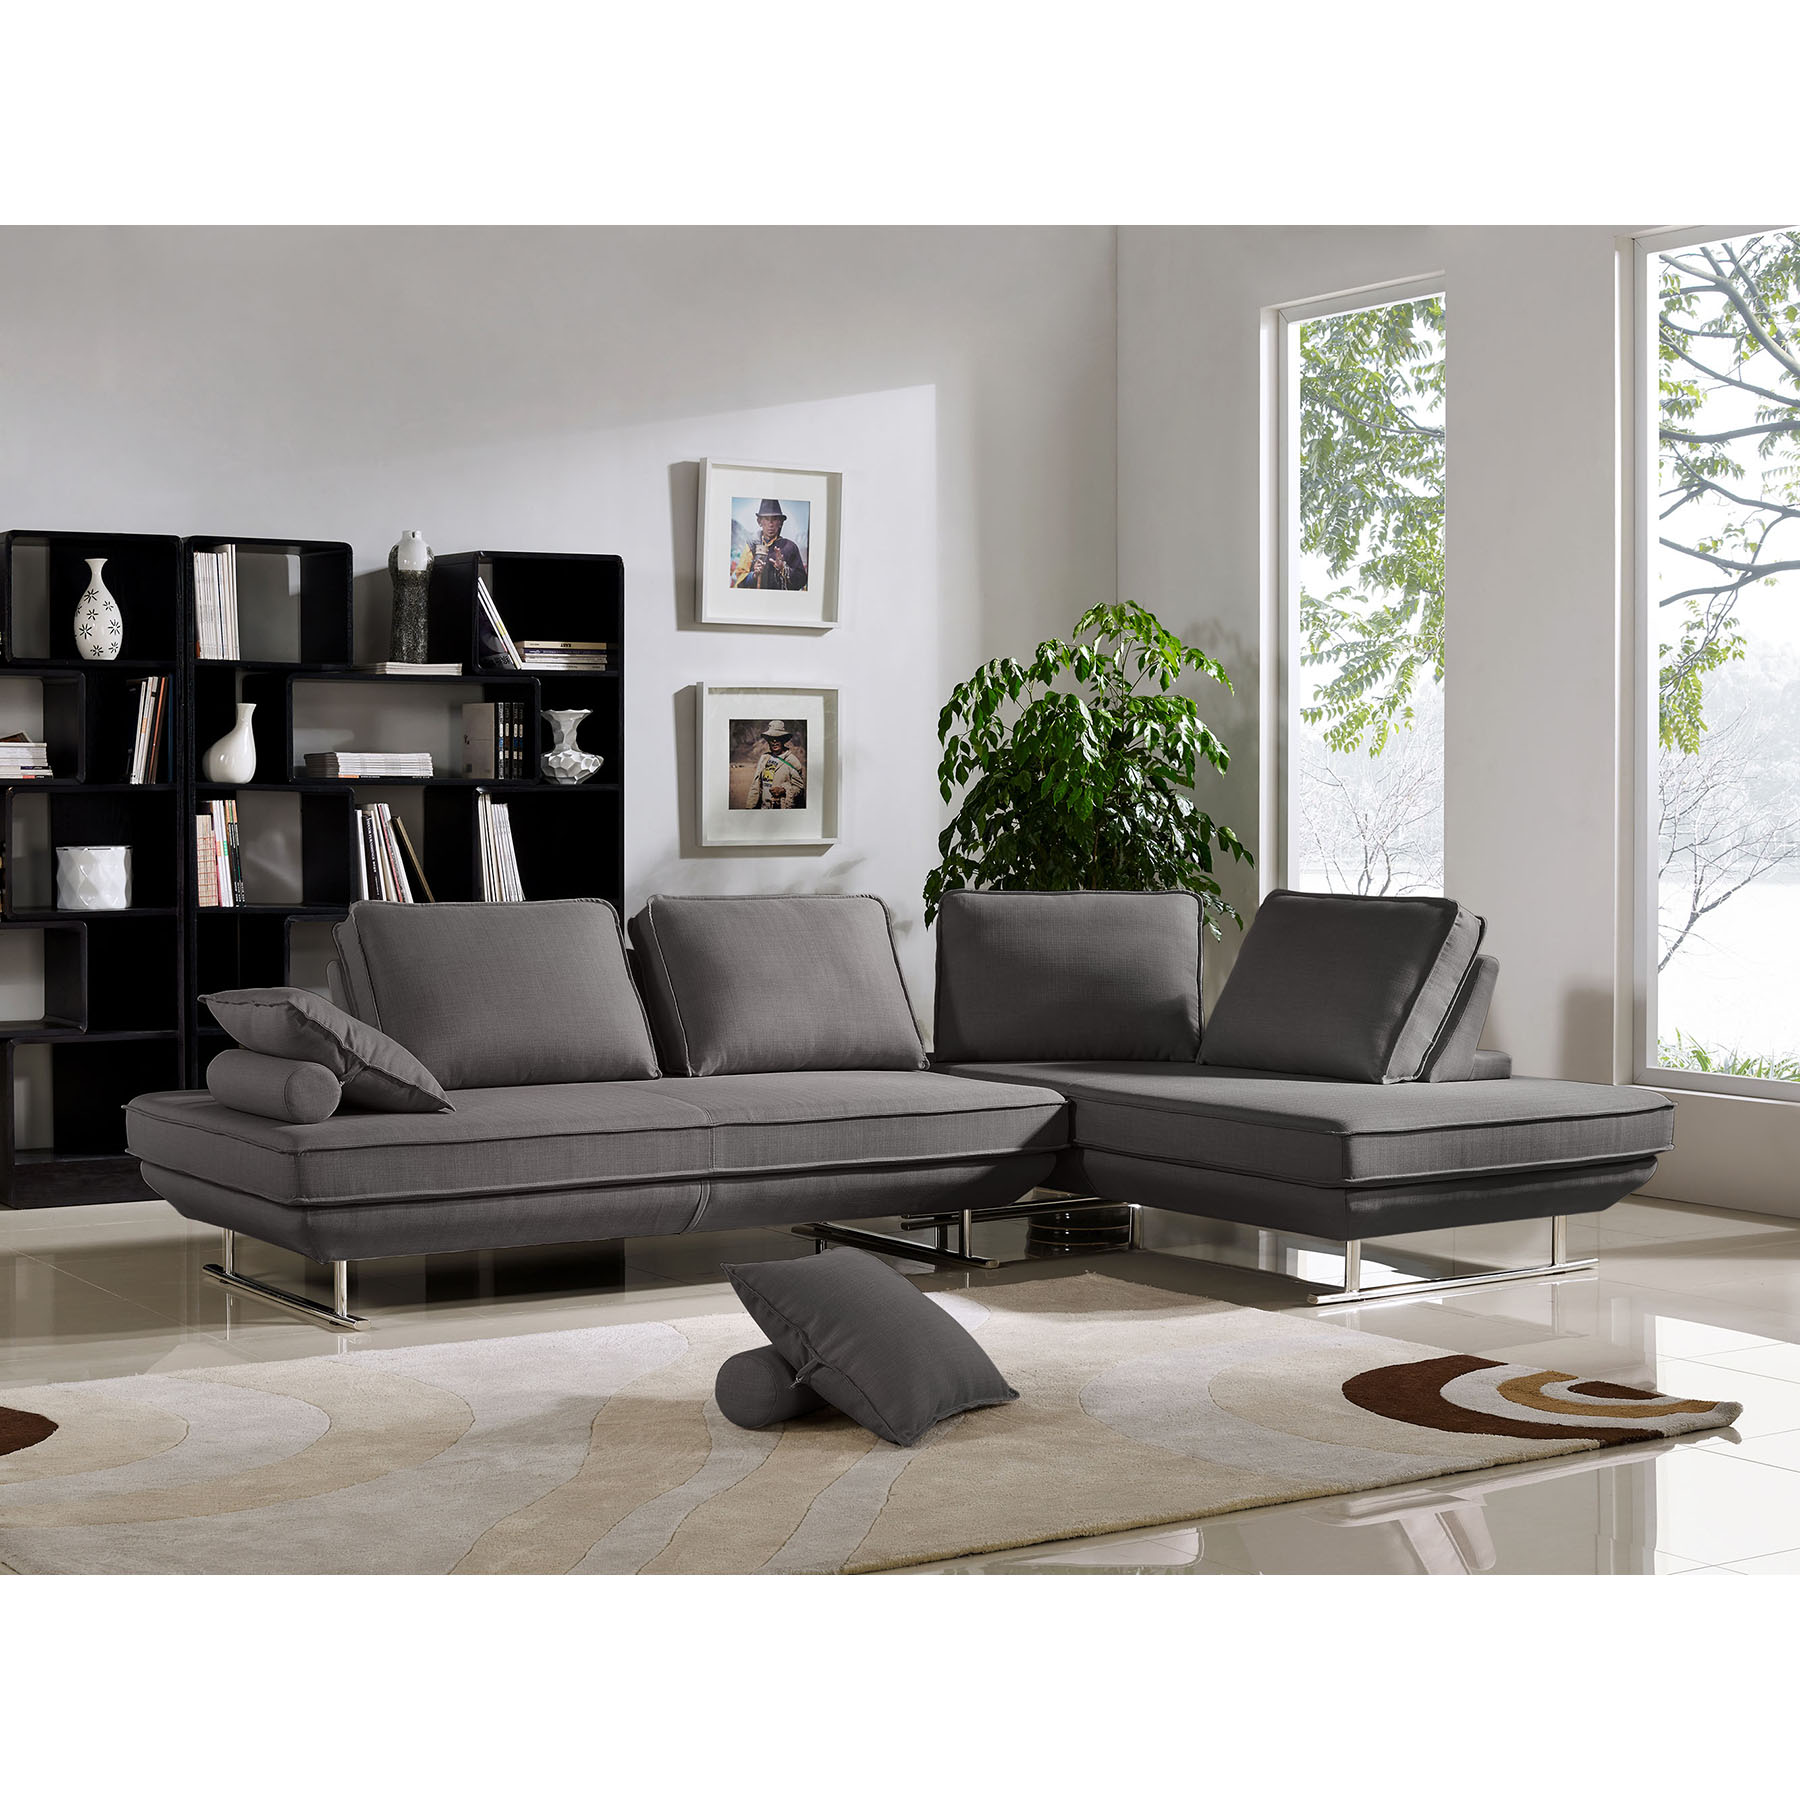 diamond sofa dolce daren leather 6 piece power reclining sectional with 3 recliners lounge chairs moveable backrest gray fabric set